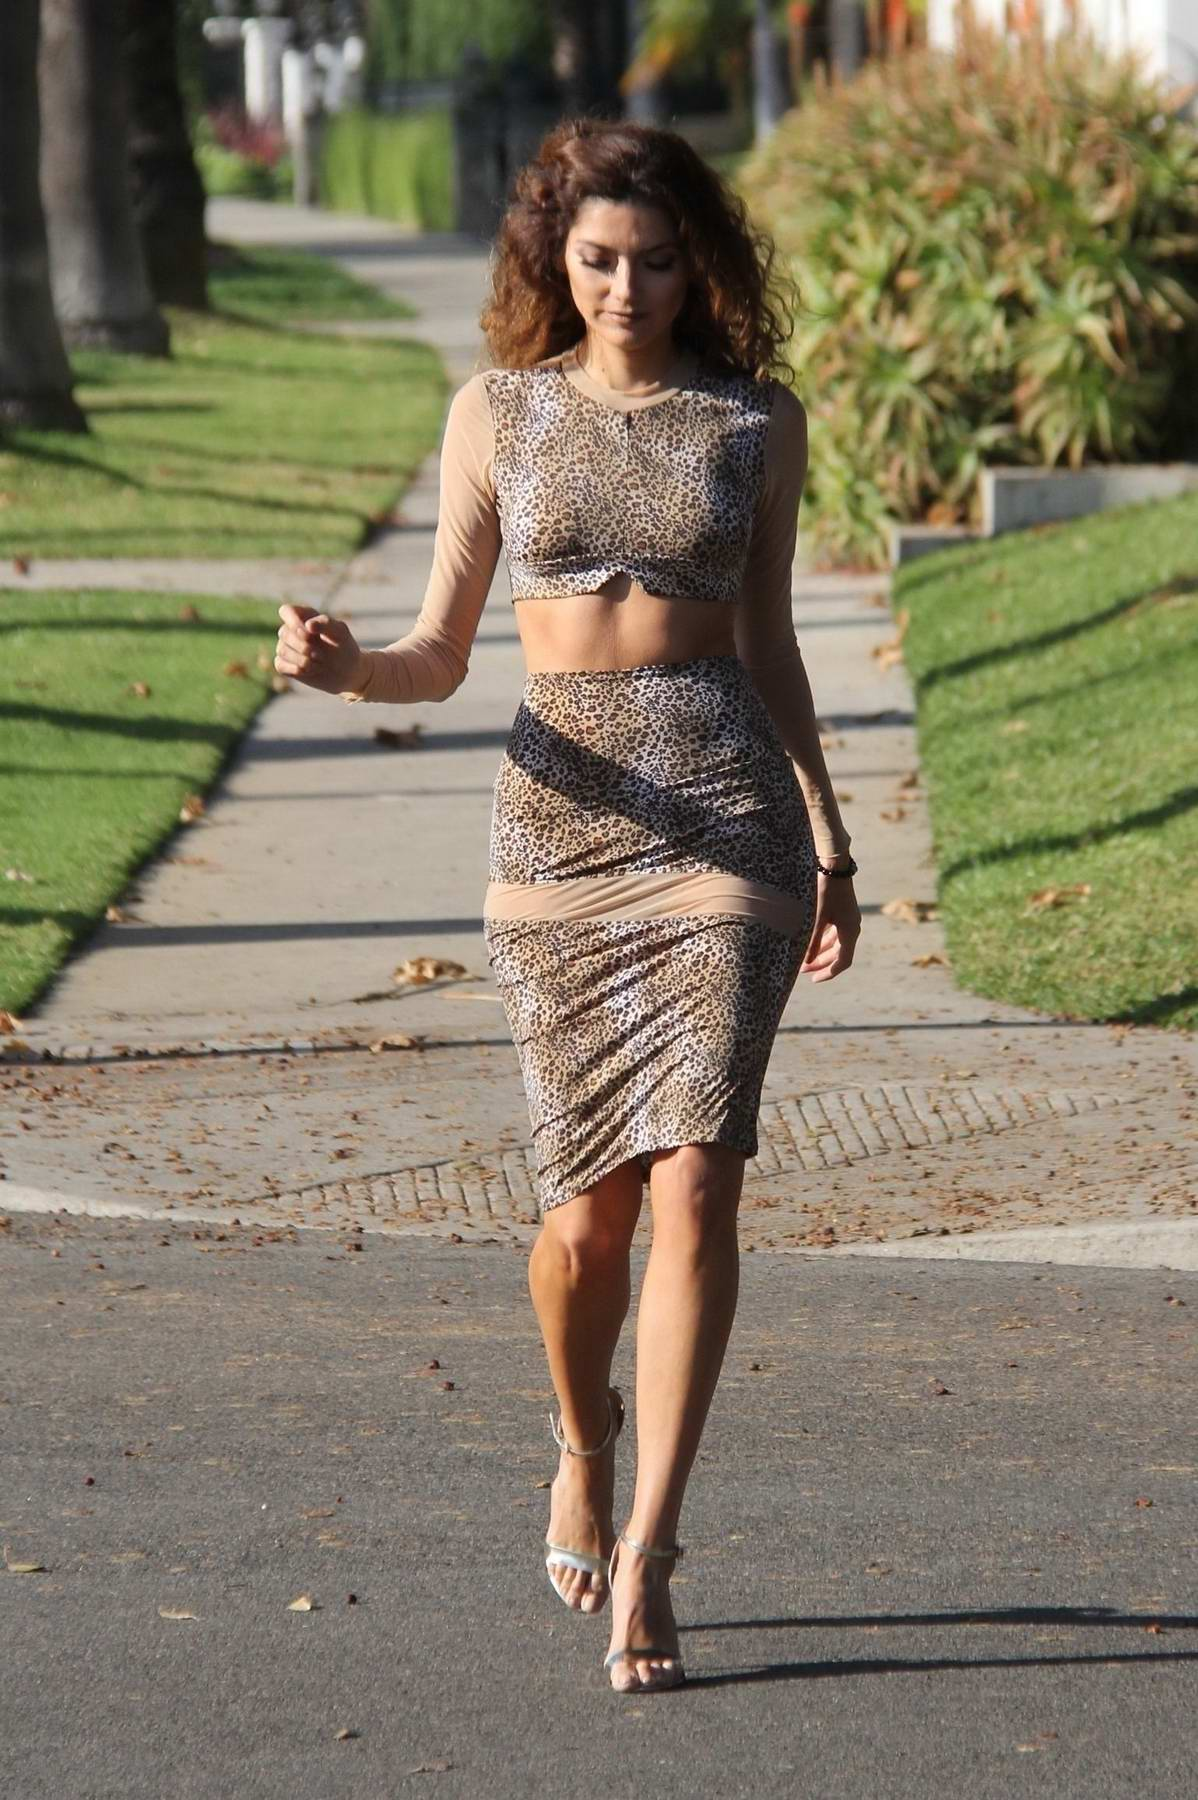 Blanca Blanco out and about in a leopard print dress in Los Angeles